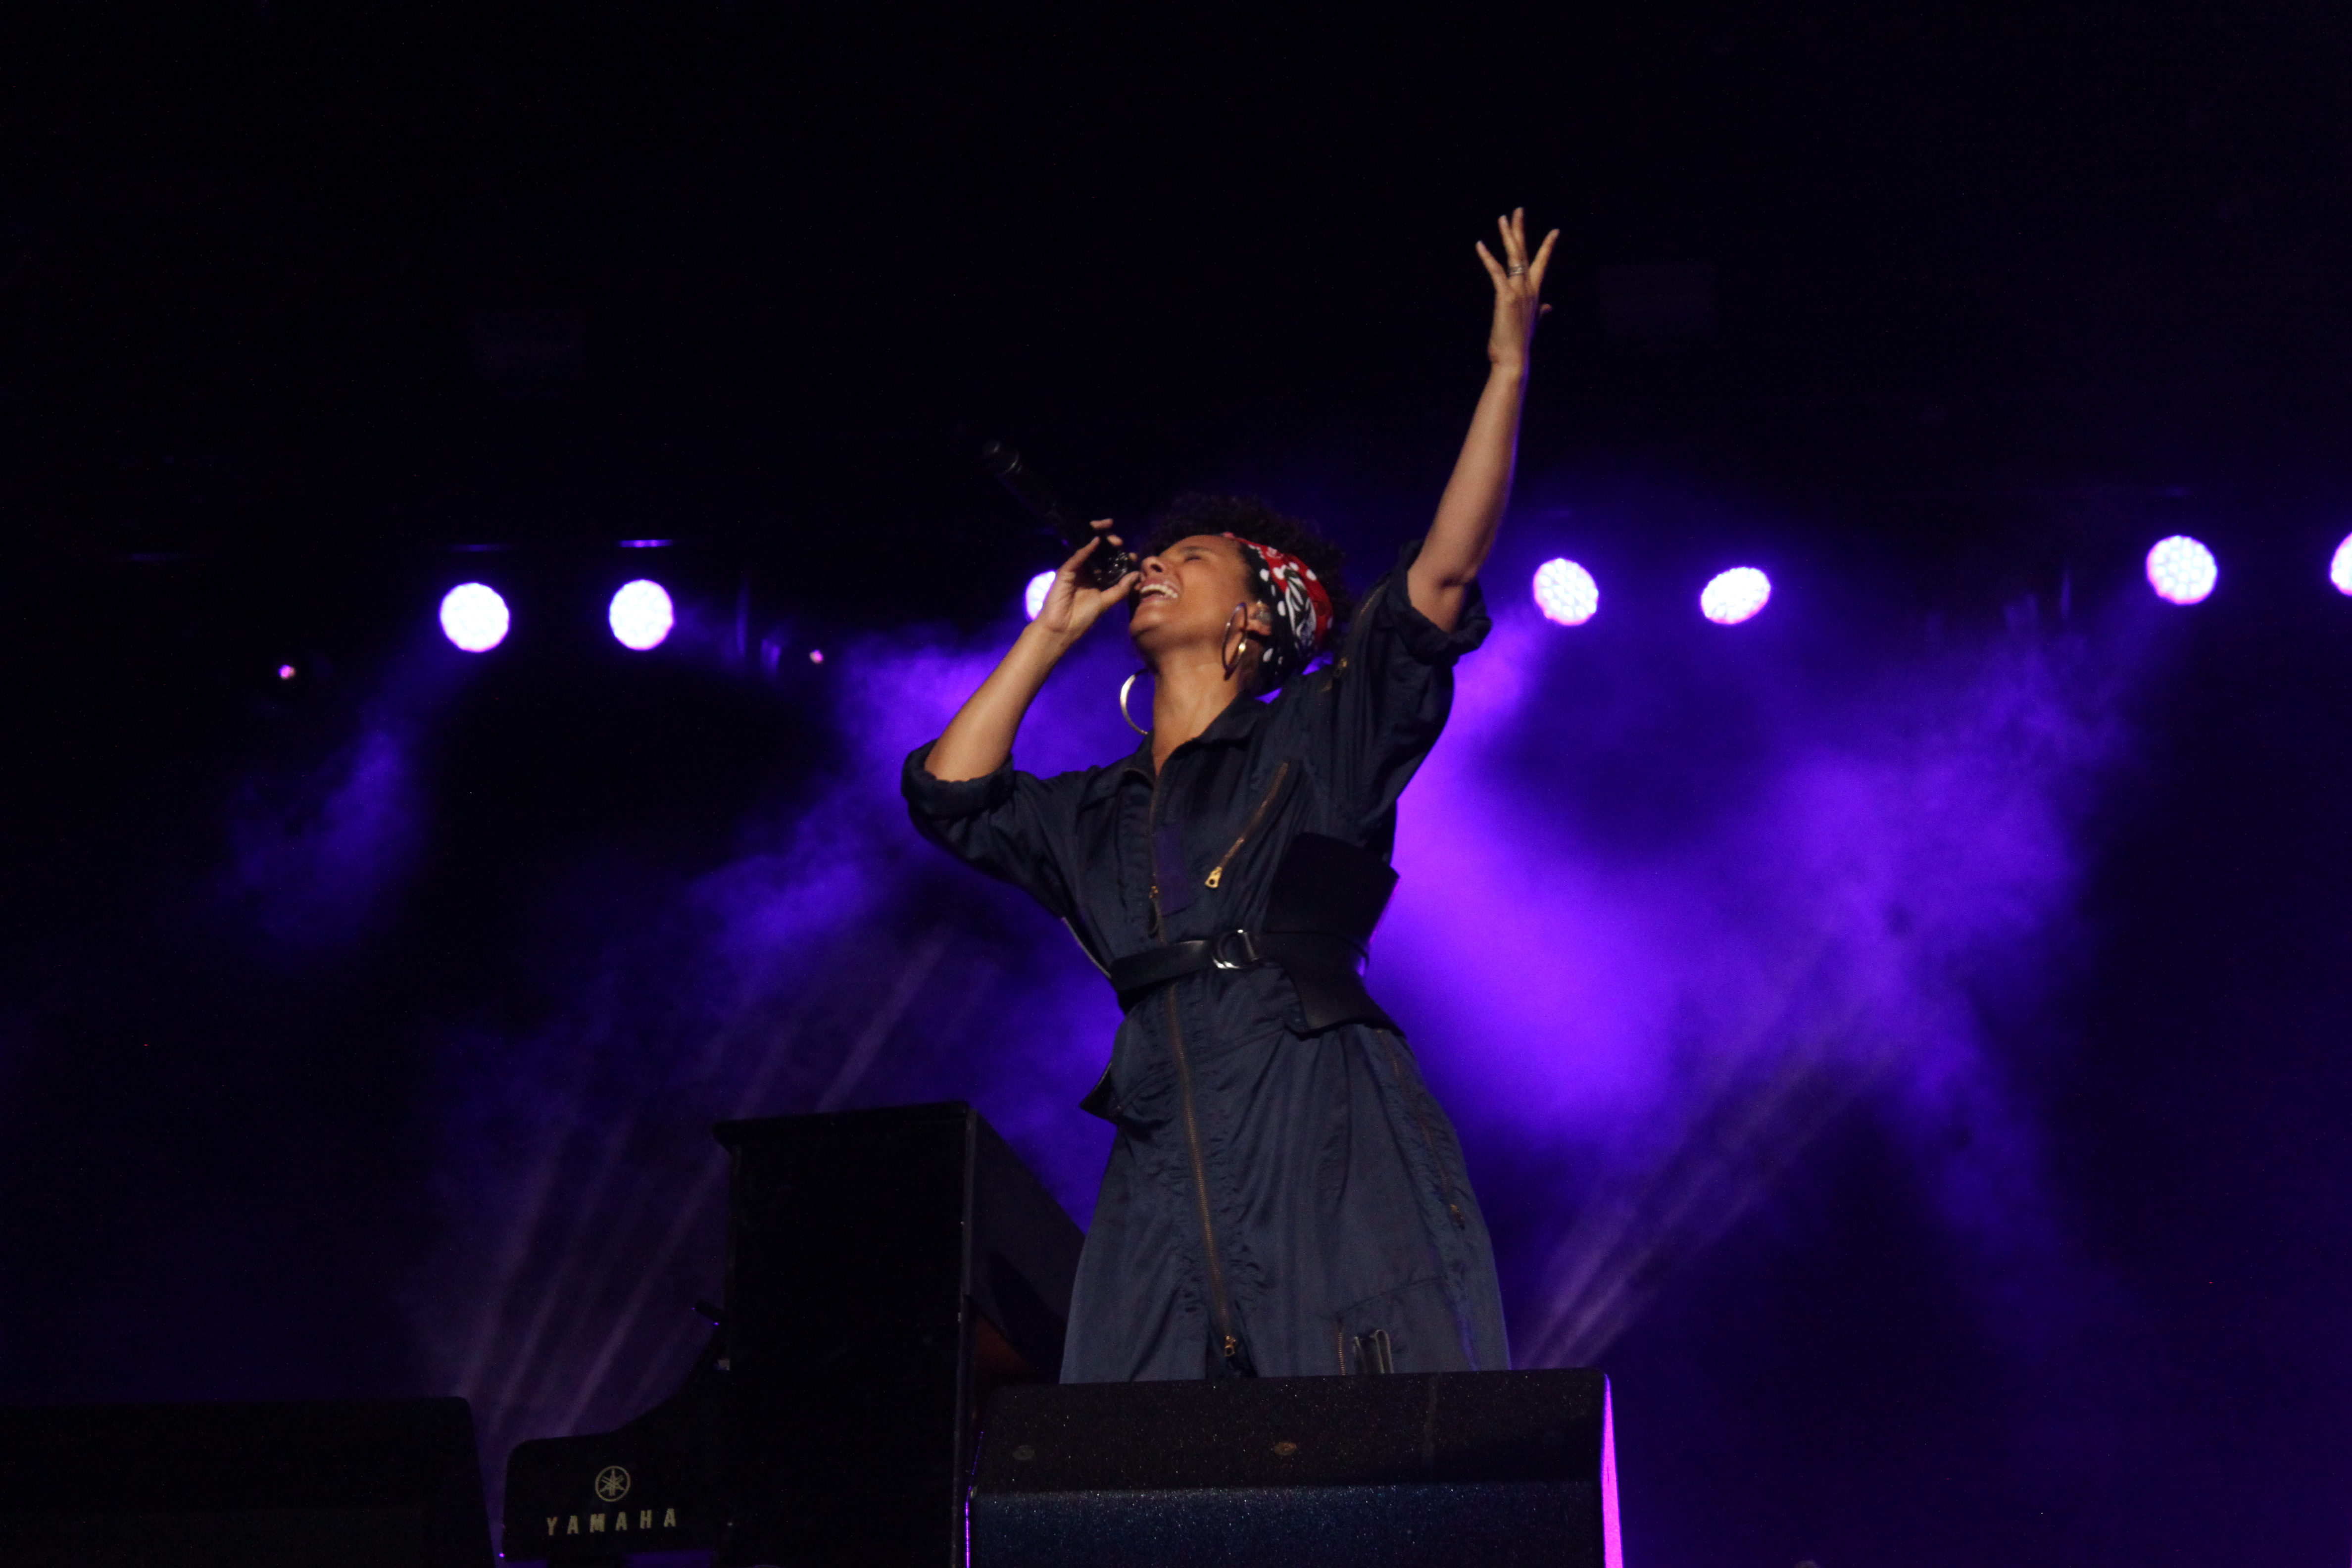 Alicia Keys was a surprise guest at the inaugural Roots Picnic NYC